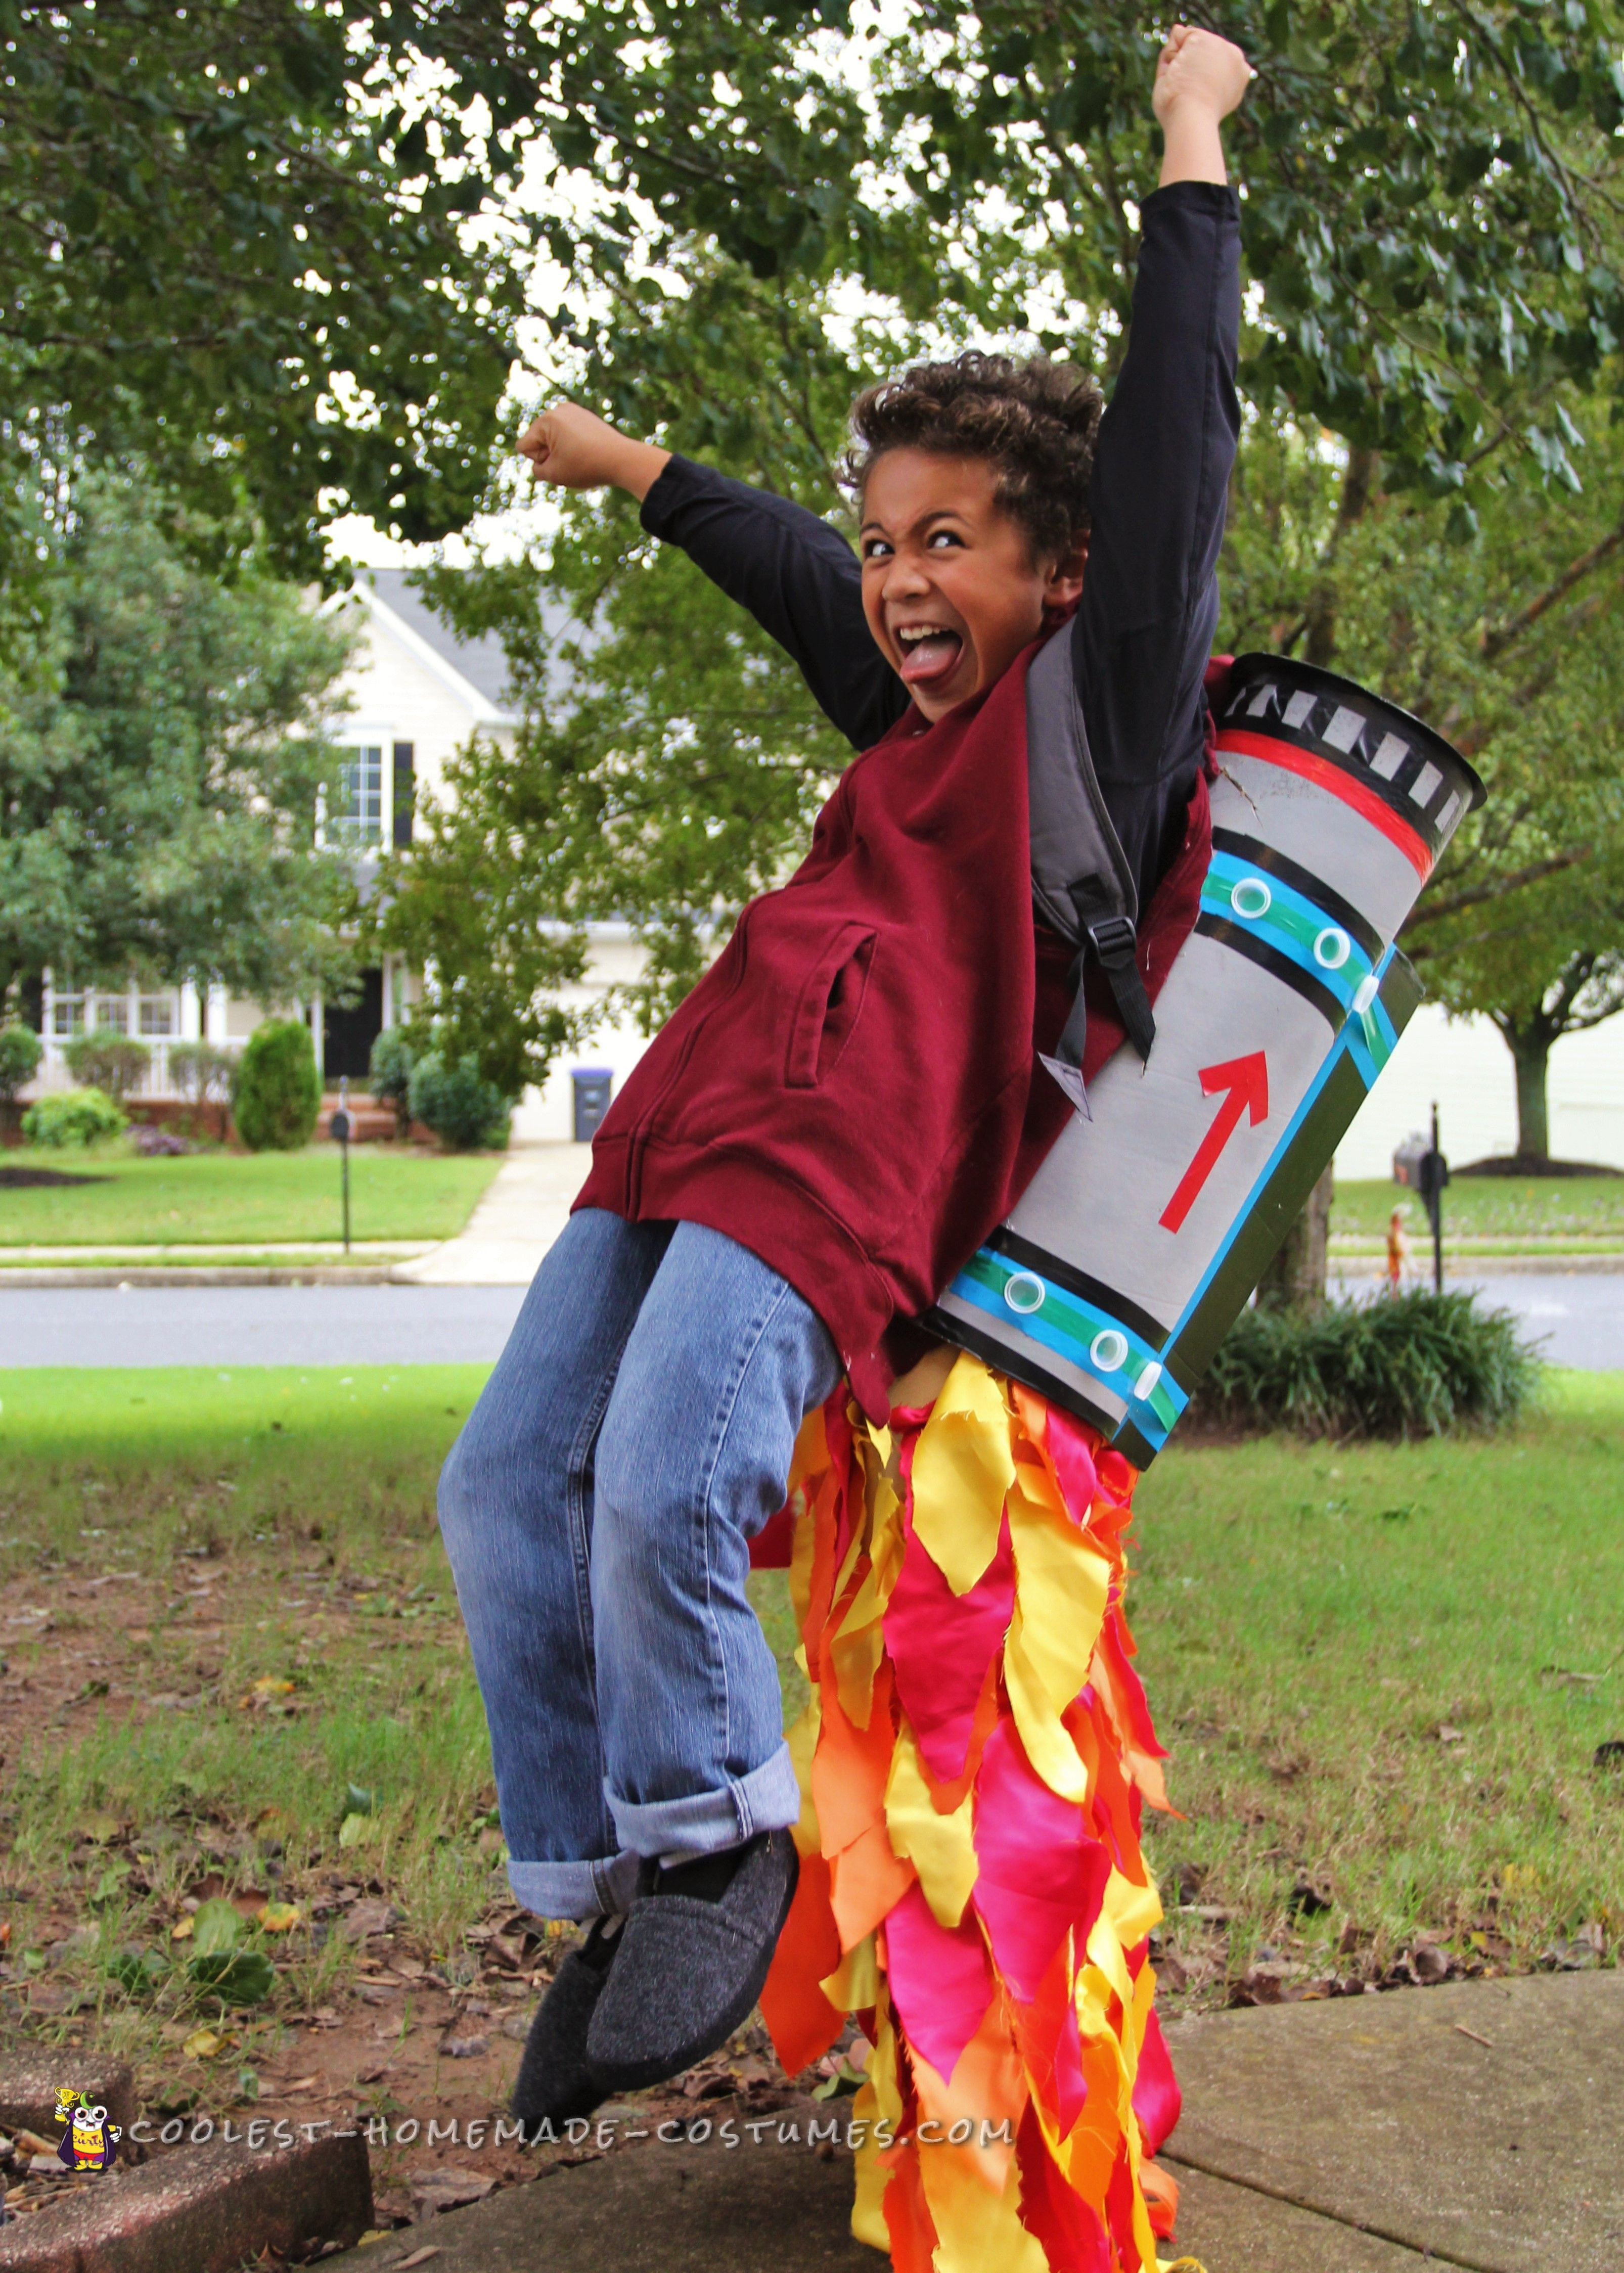 Cool Jet Pack Illusion Costume... Coolest Homemade